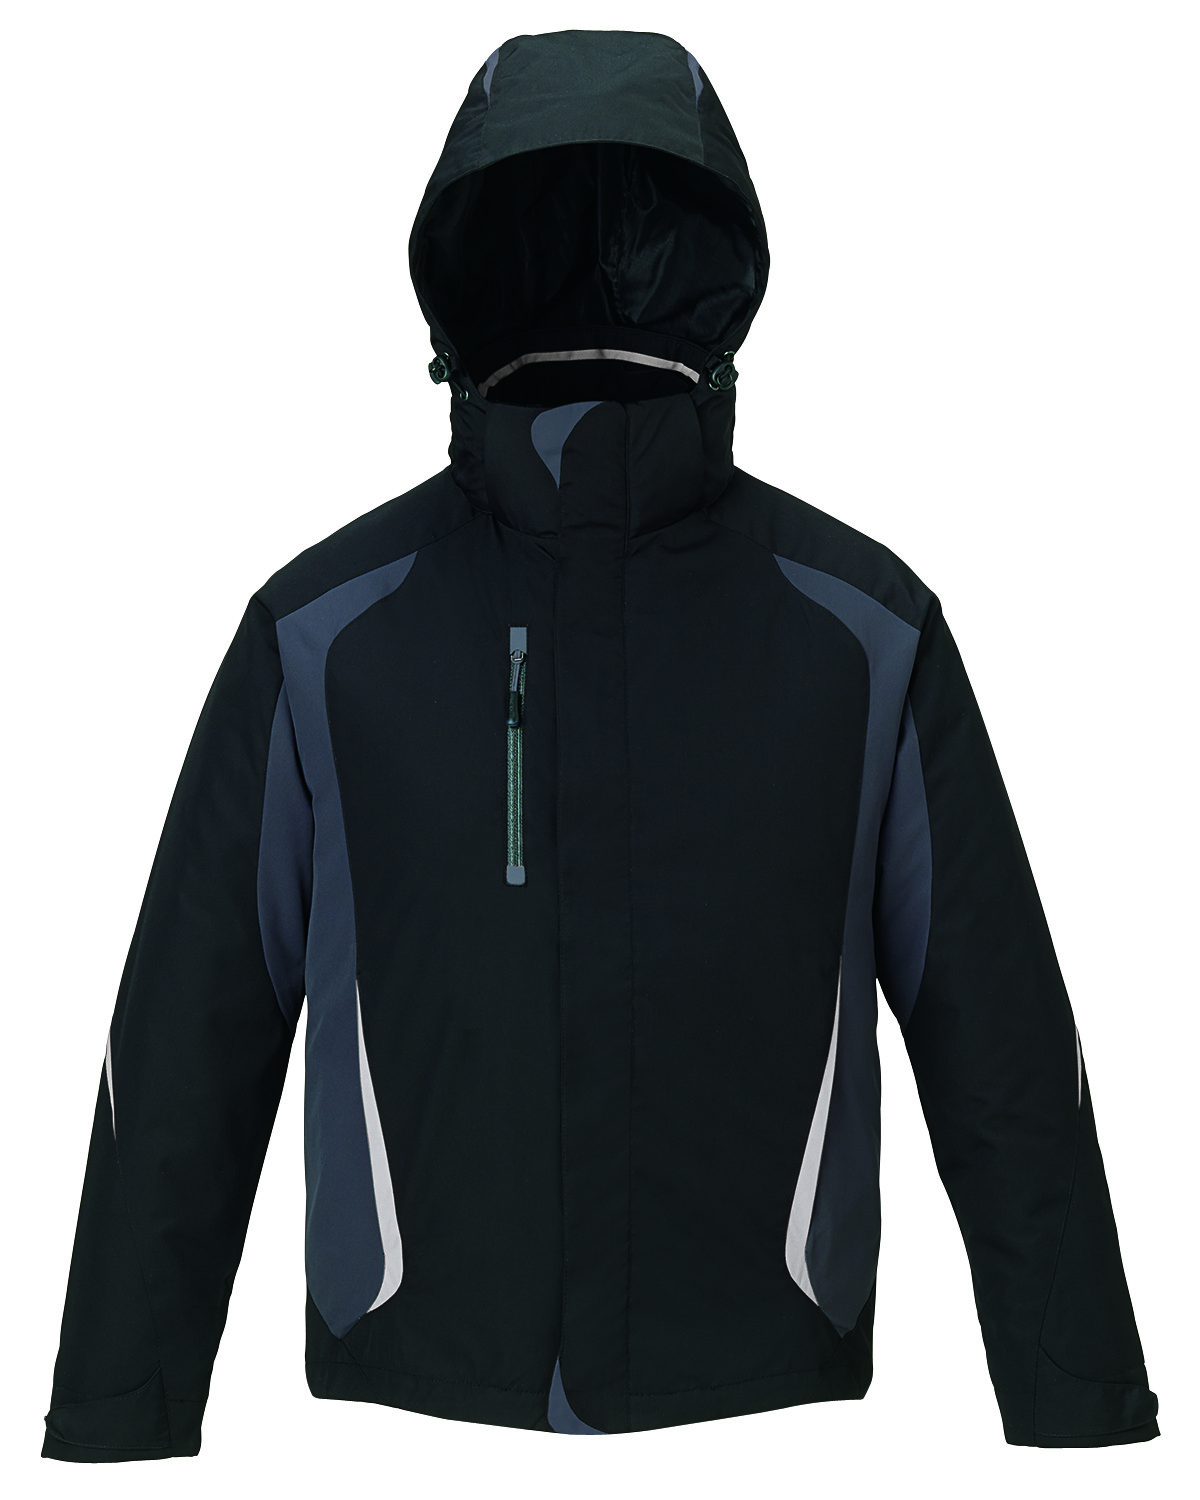 Ash City System Jackets 88195 - Height Men's 3-In-1 ...